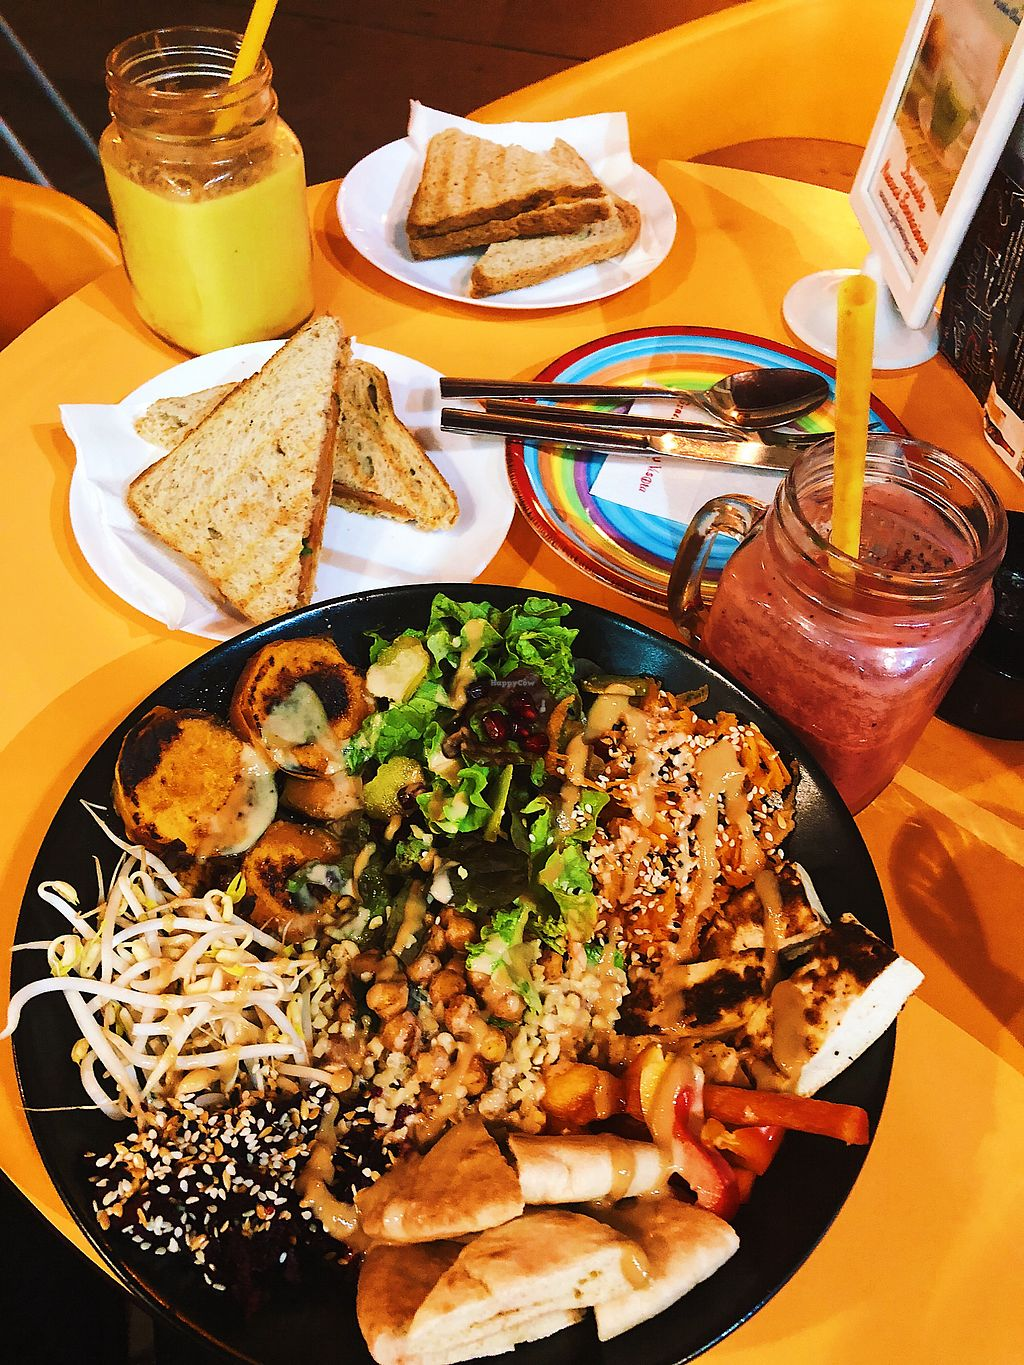 """Photo of Roots  by <a href=""""/members/profile/SimonaCollins"""">SimonaCollins</a> <br/>Buddha bowl <br/> January 17, 2018  - <a href='/contact/abuse/image/88848/347768'>Report</a>"""